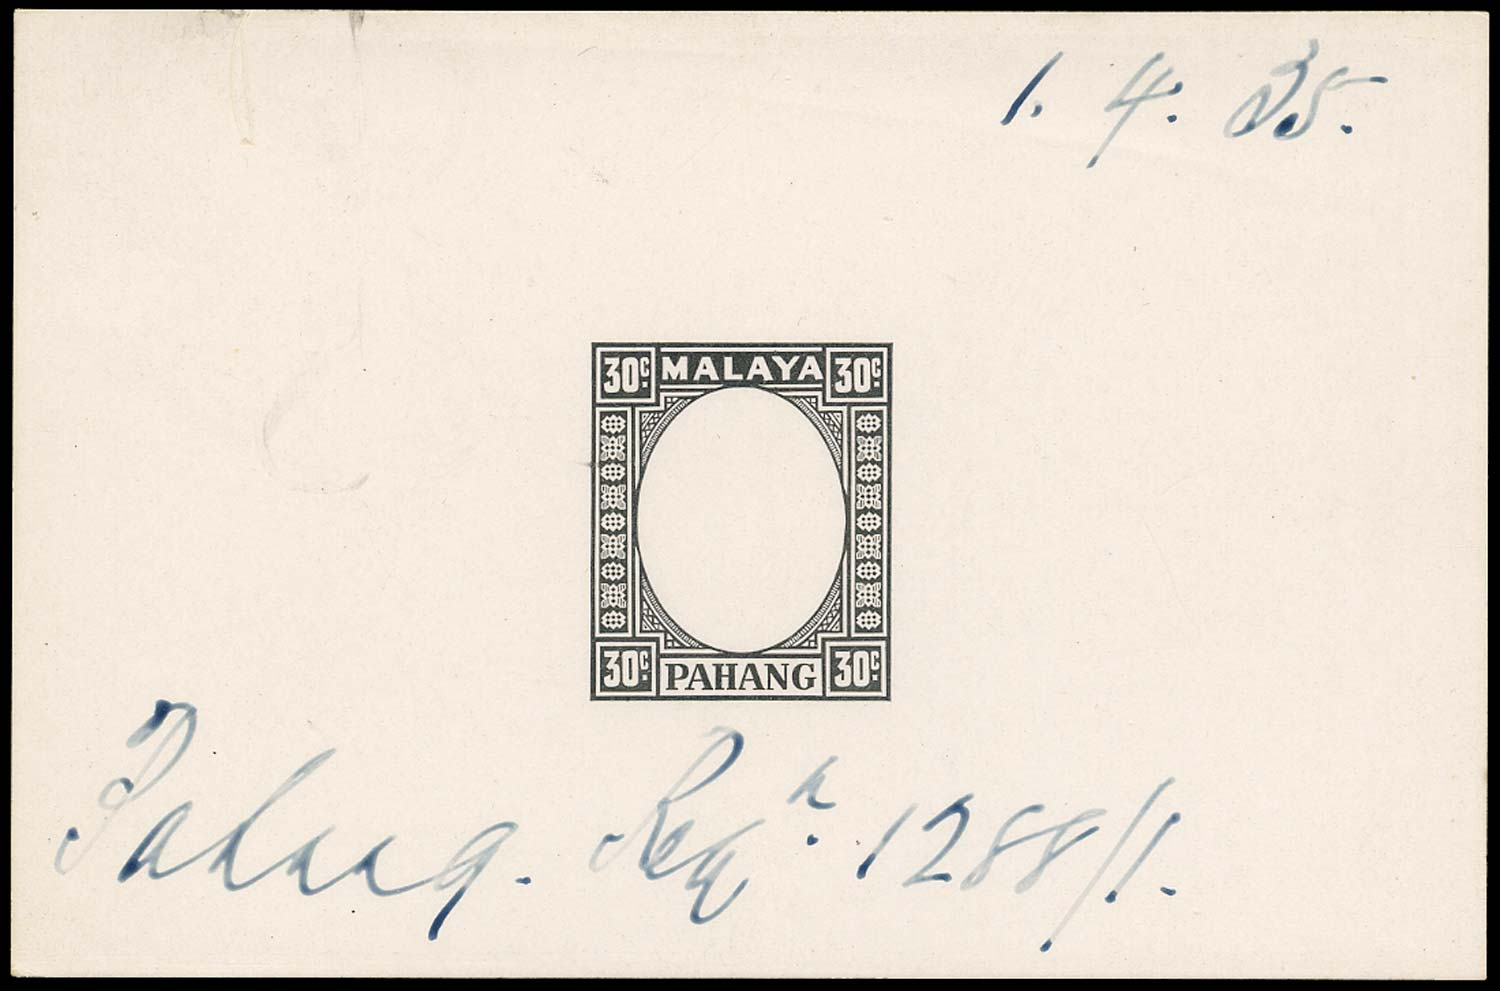 MALAYA - PAHANG 1935  SG41 Proof of frame for 30c value